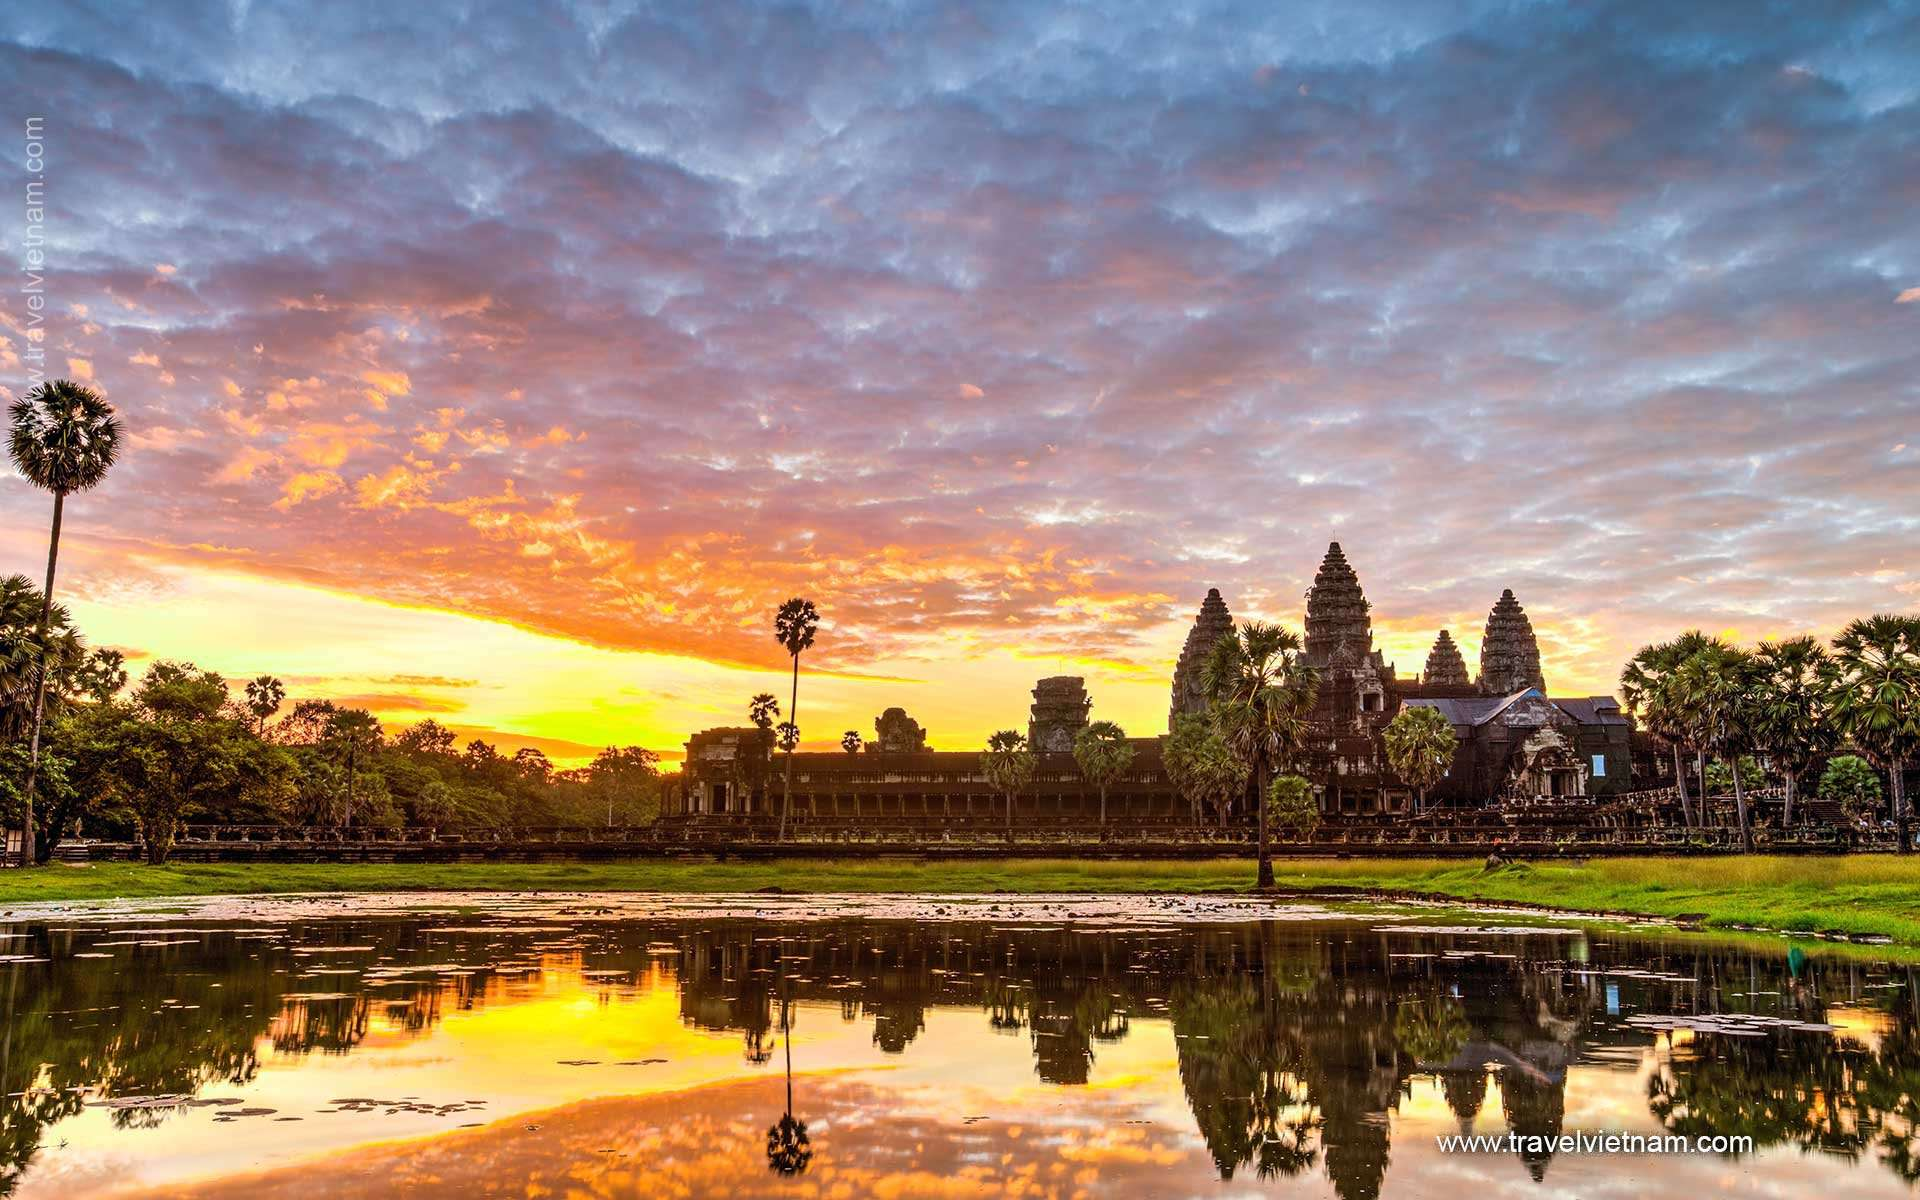 Central Vietnam & Angkor Temples - 7 Days